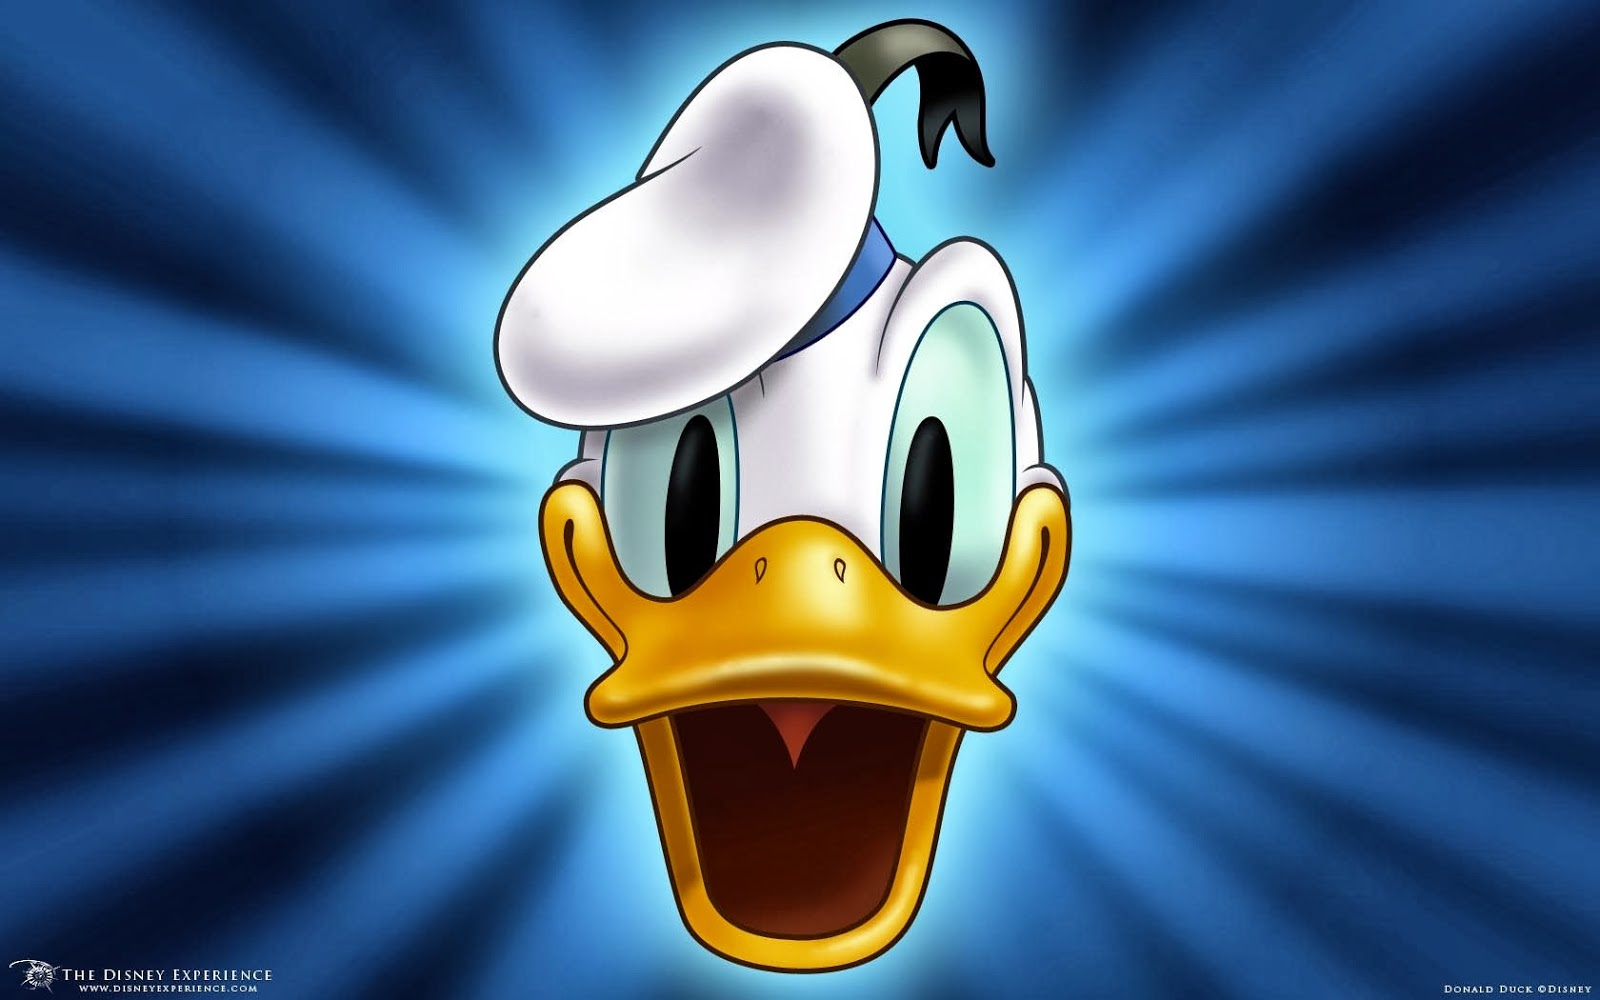 Donald duck hd images - photo#50